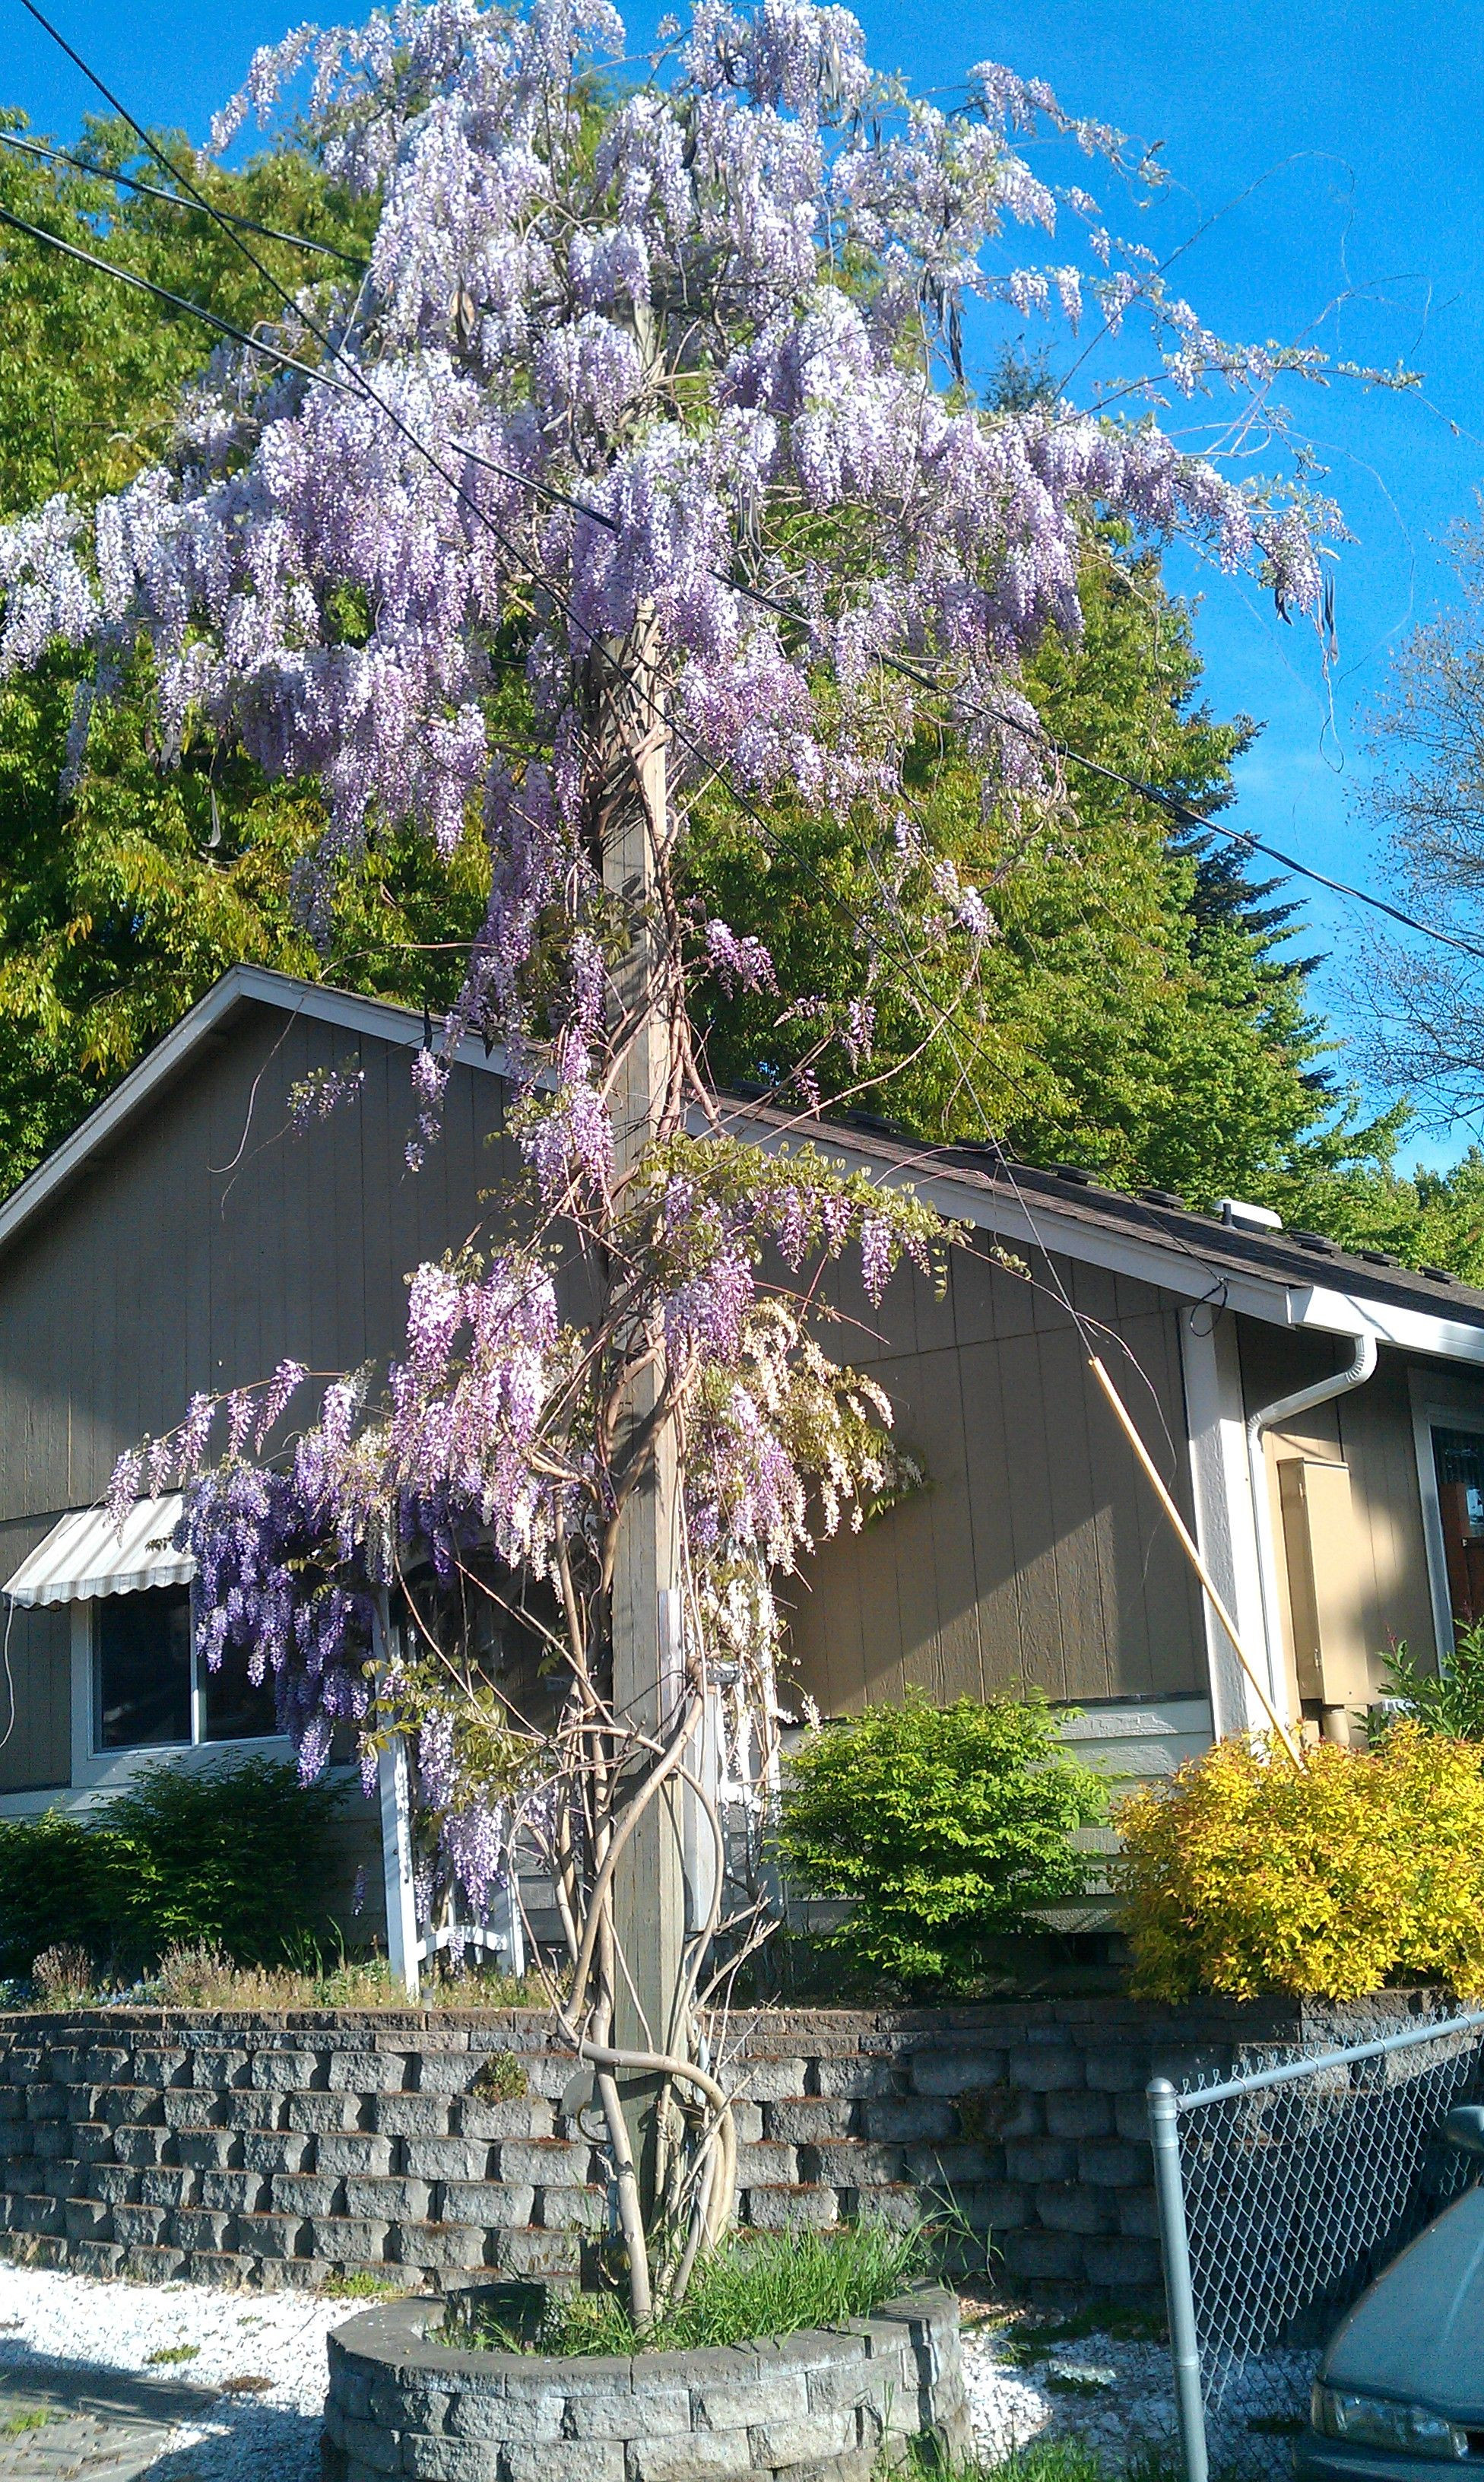 No where to plant a wisteria Train it up the utility pole